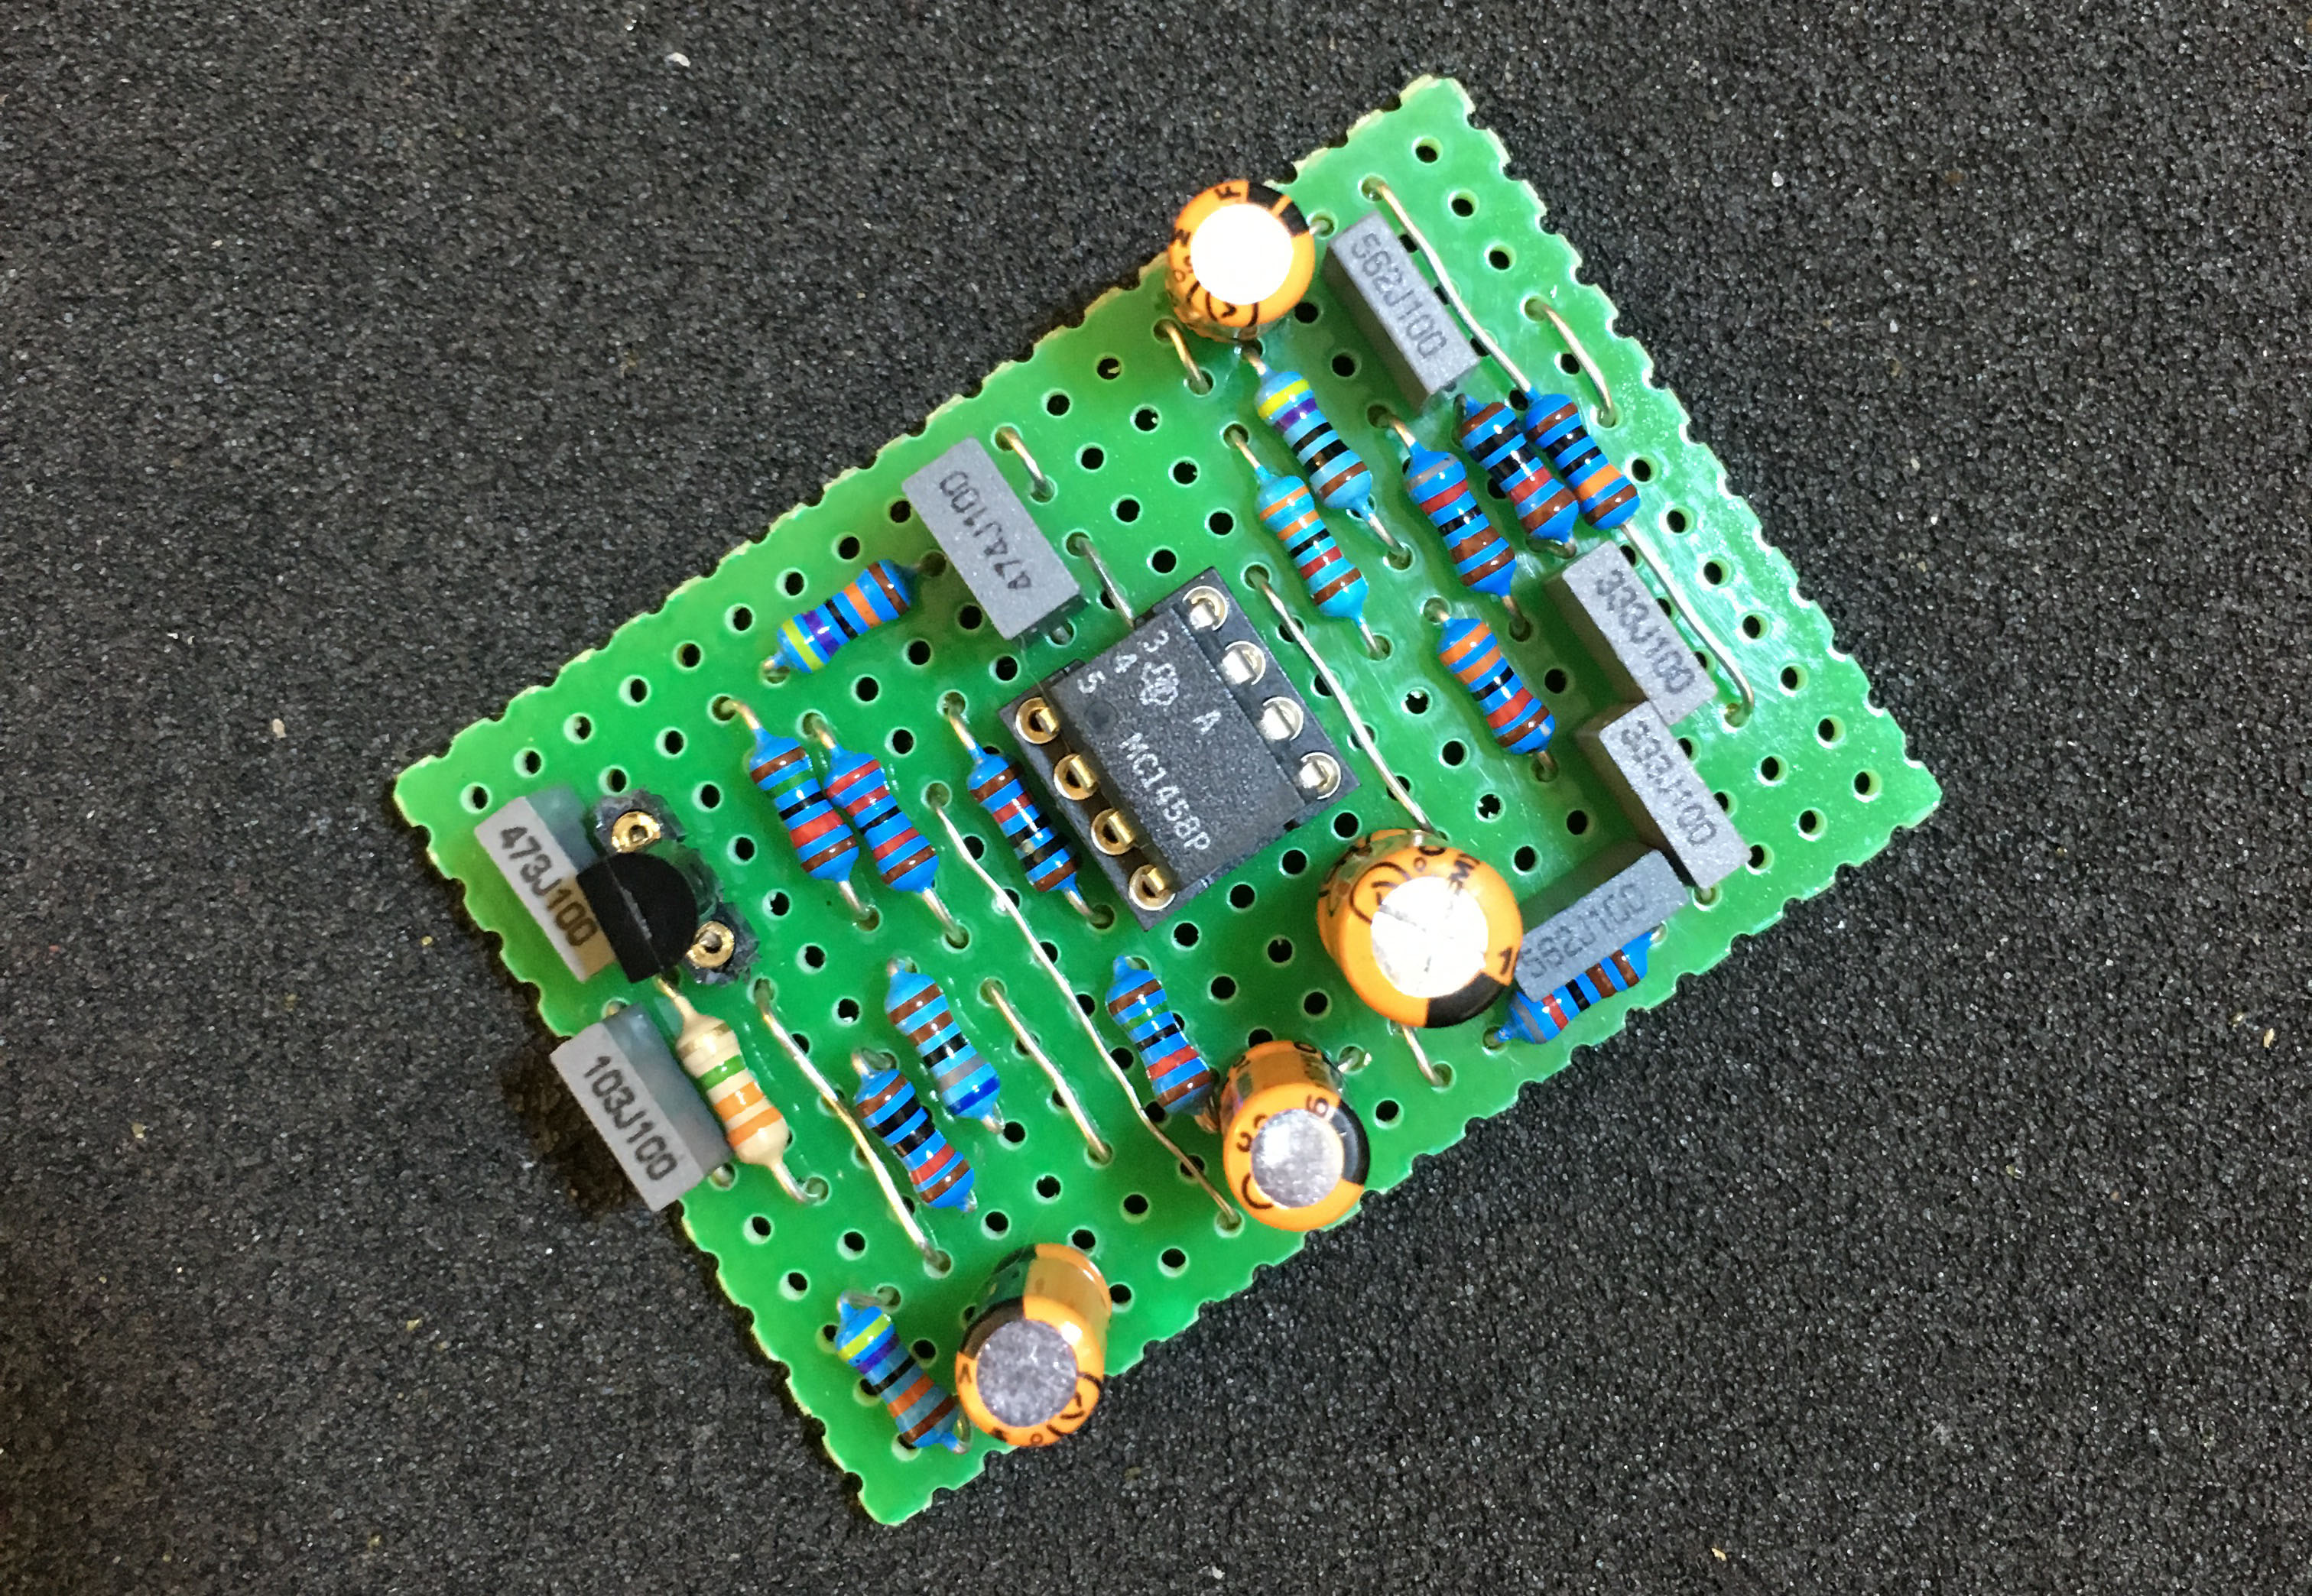 The Edge Of Your Seat Build Own Boss Fa 1 Fet Amplifier Tone Dan Amstrong Blue Clipper Guitar Effect Circuit Diagram Step 6 Insert Semiconductors Into Their Sockets And Solder If Not Using A Transistor Socket Bend Leads Clip